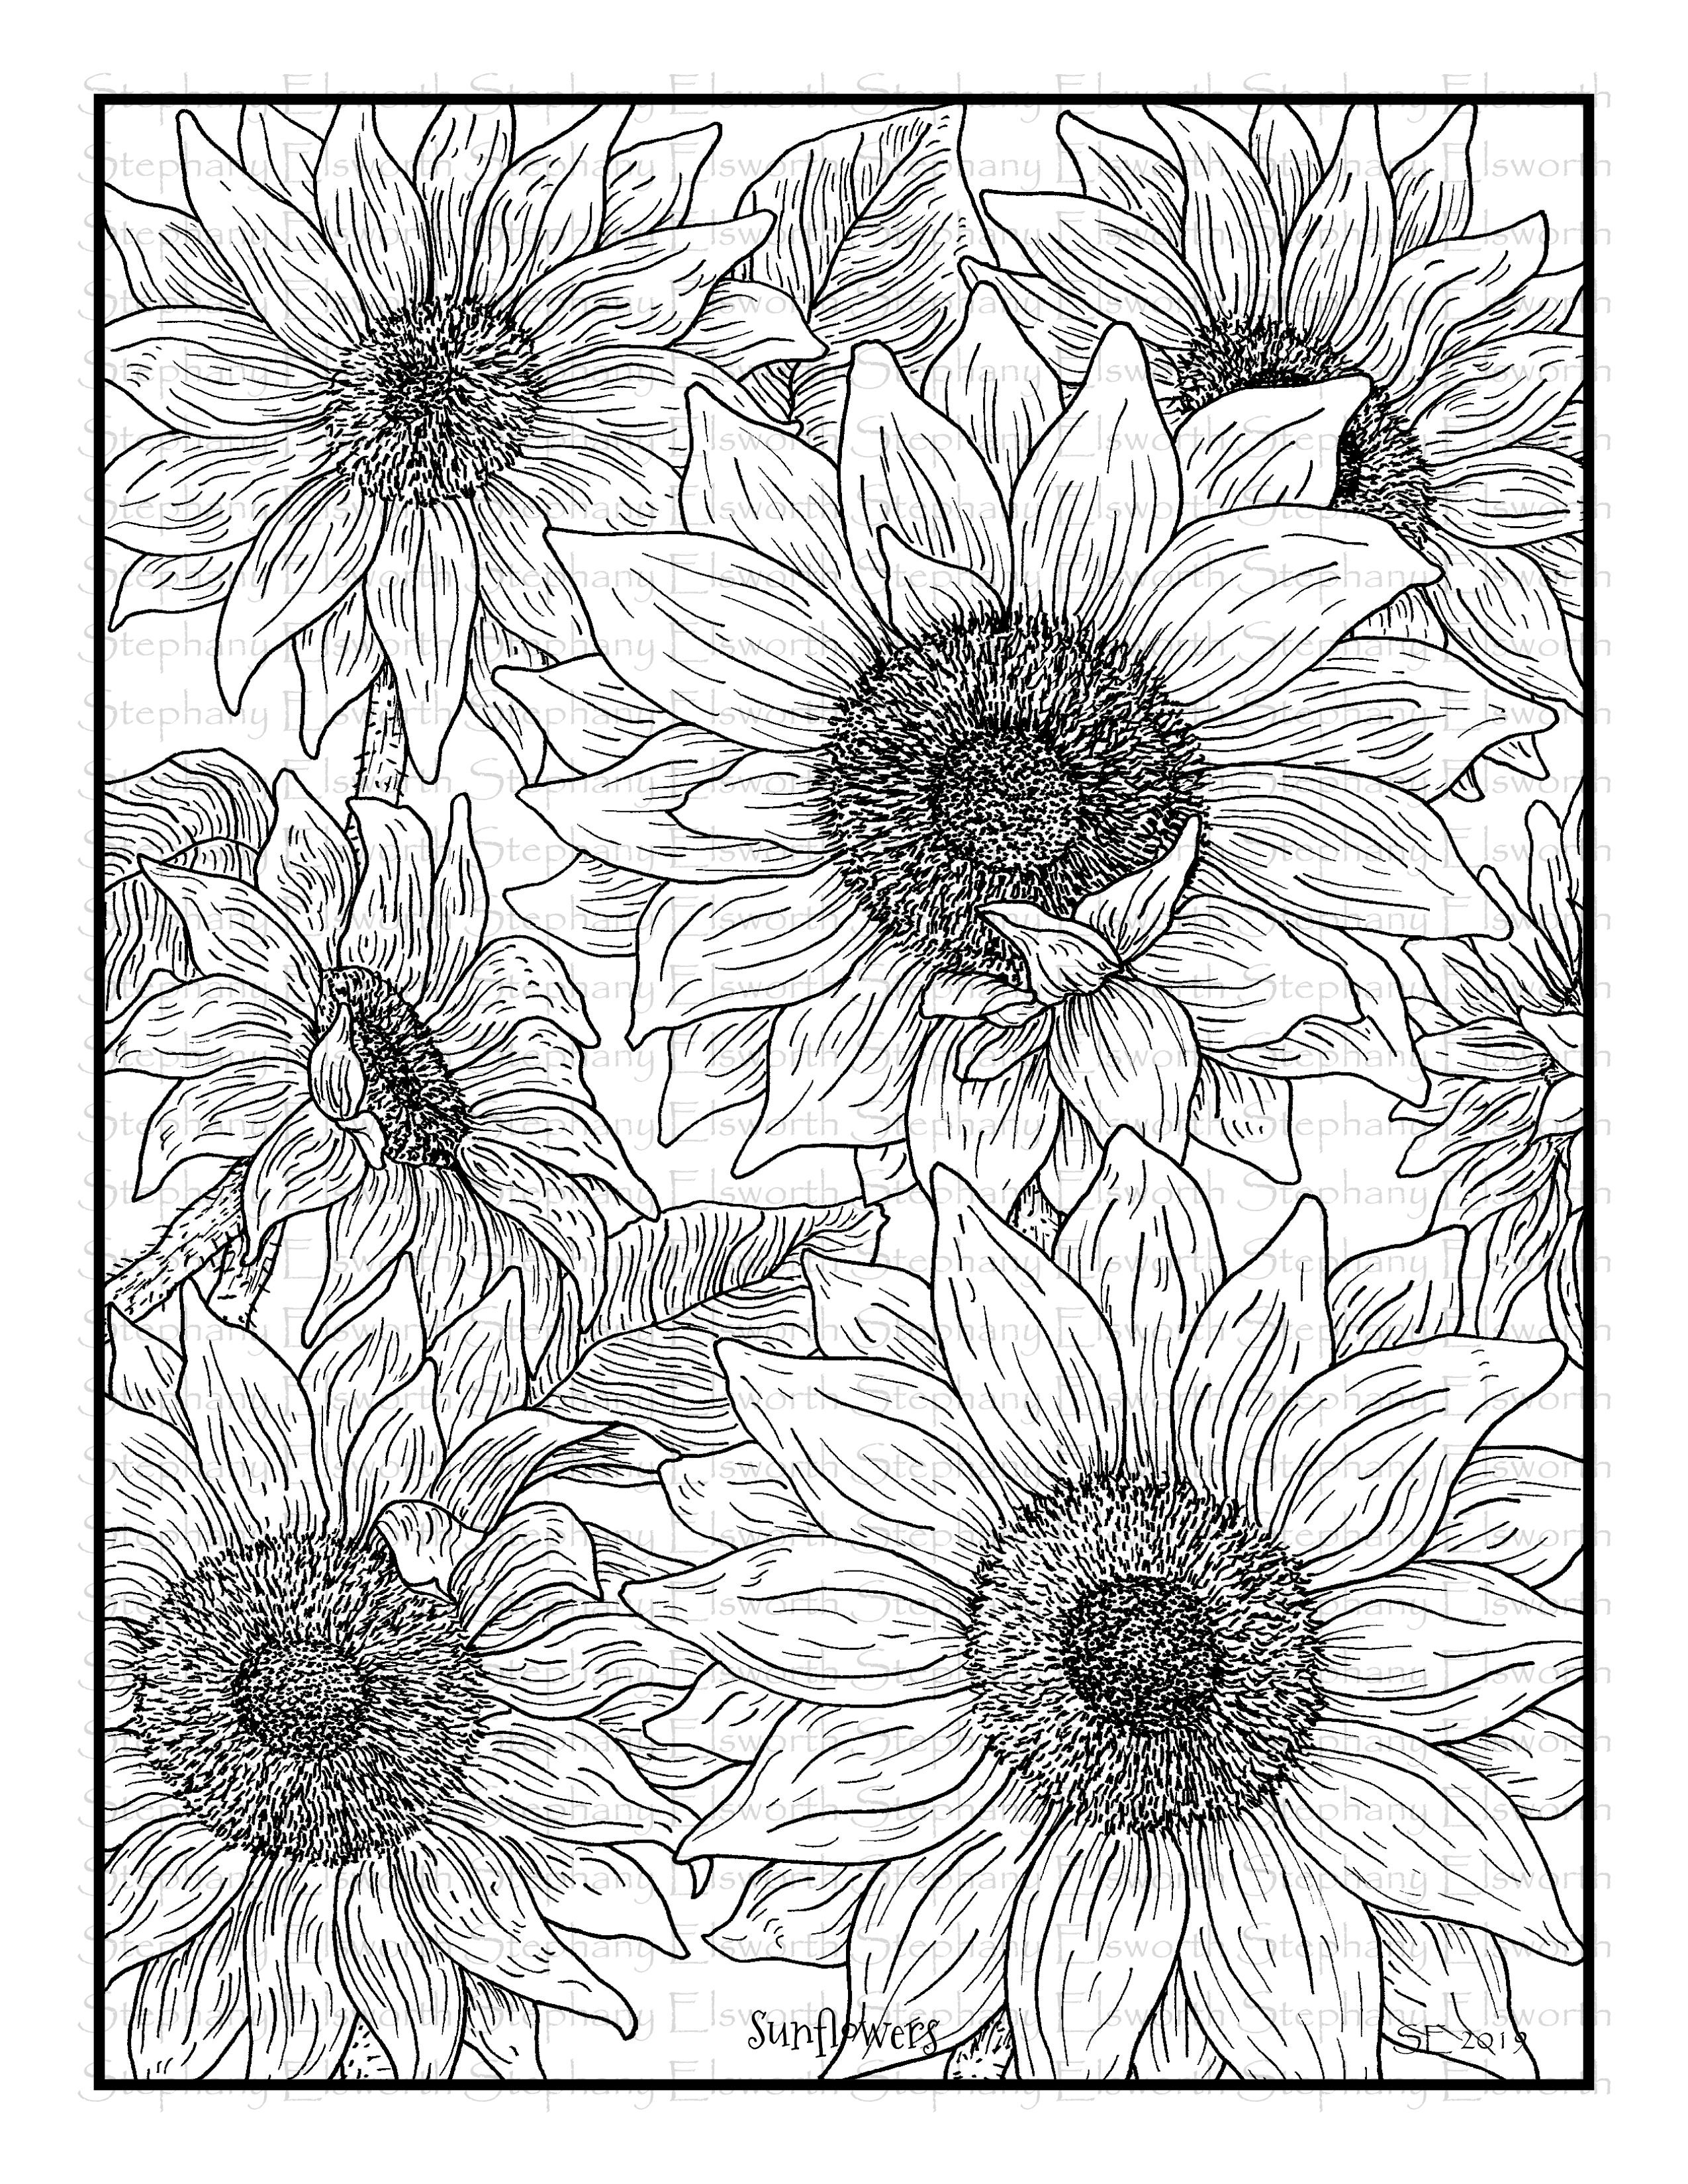 sunflower coloring page sunflower coloring pages for kids at getdrawings free coloring page sunflower